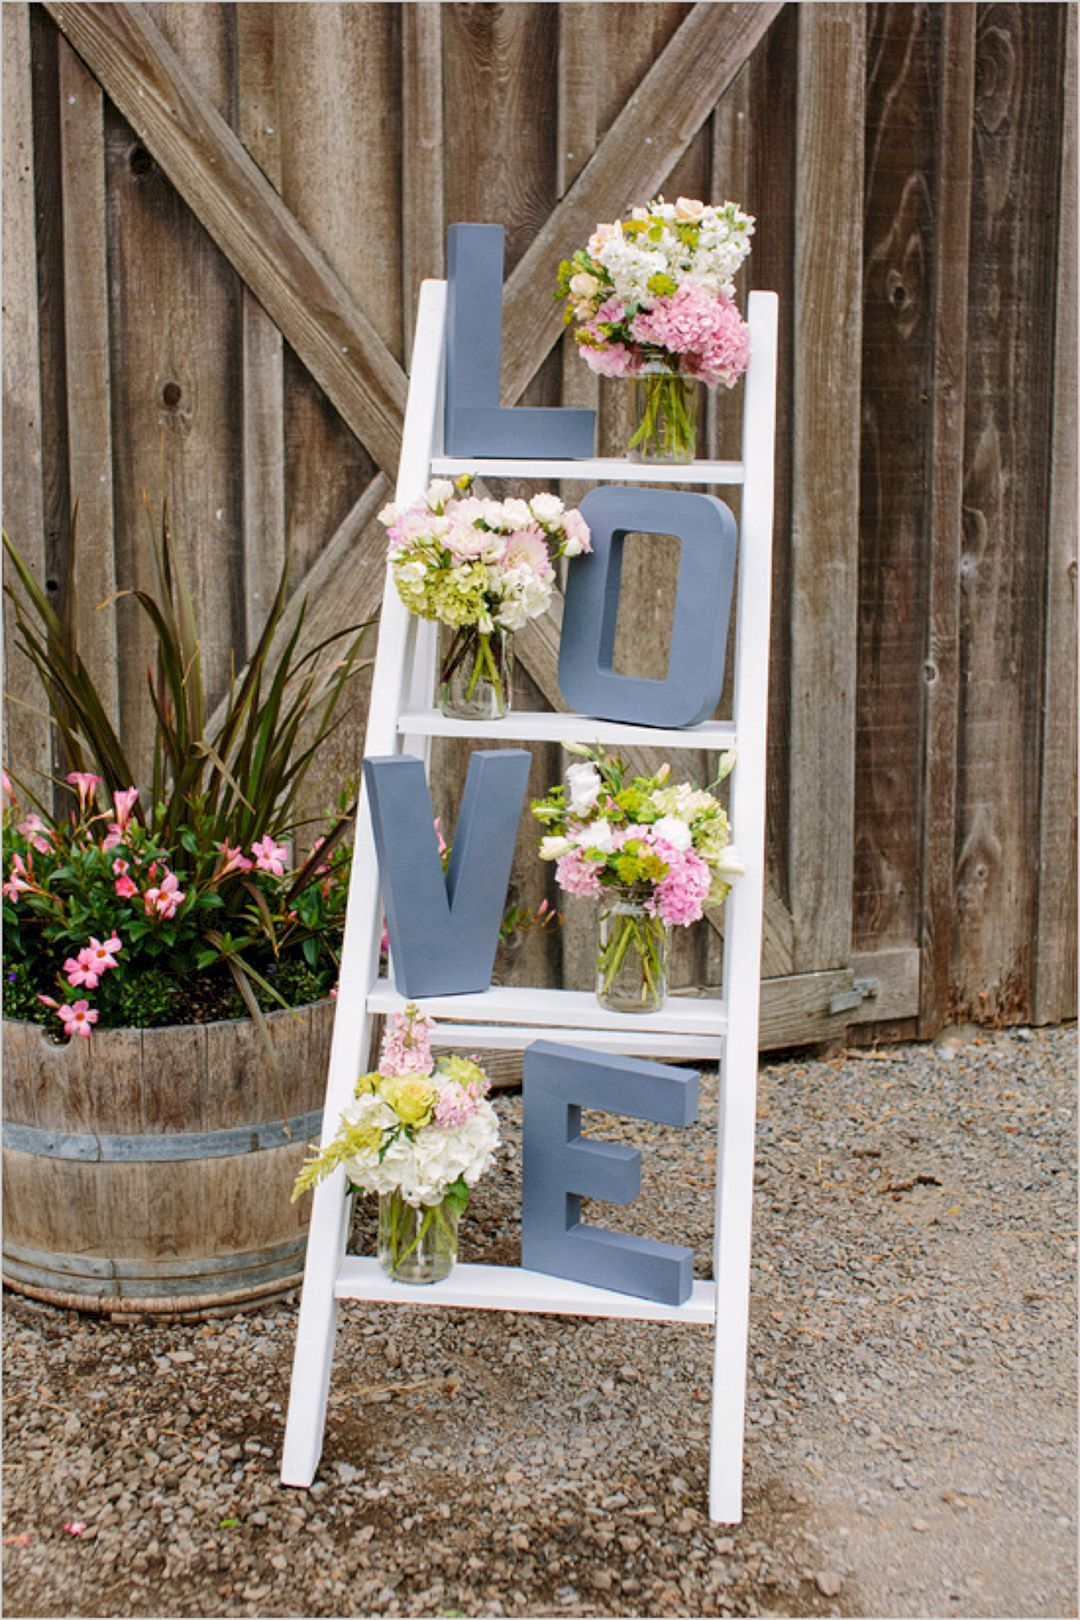 Marvelous Rustic Chic Backyard Wedding Party Decor Ideas No 09 OOSILE